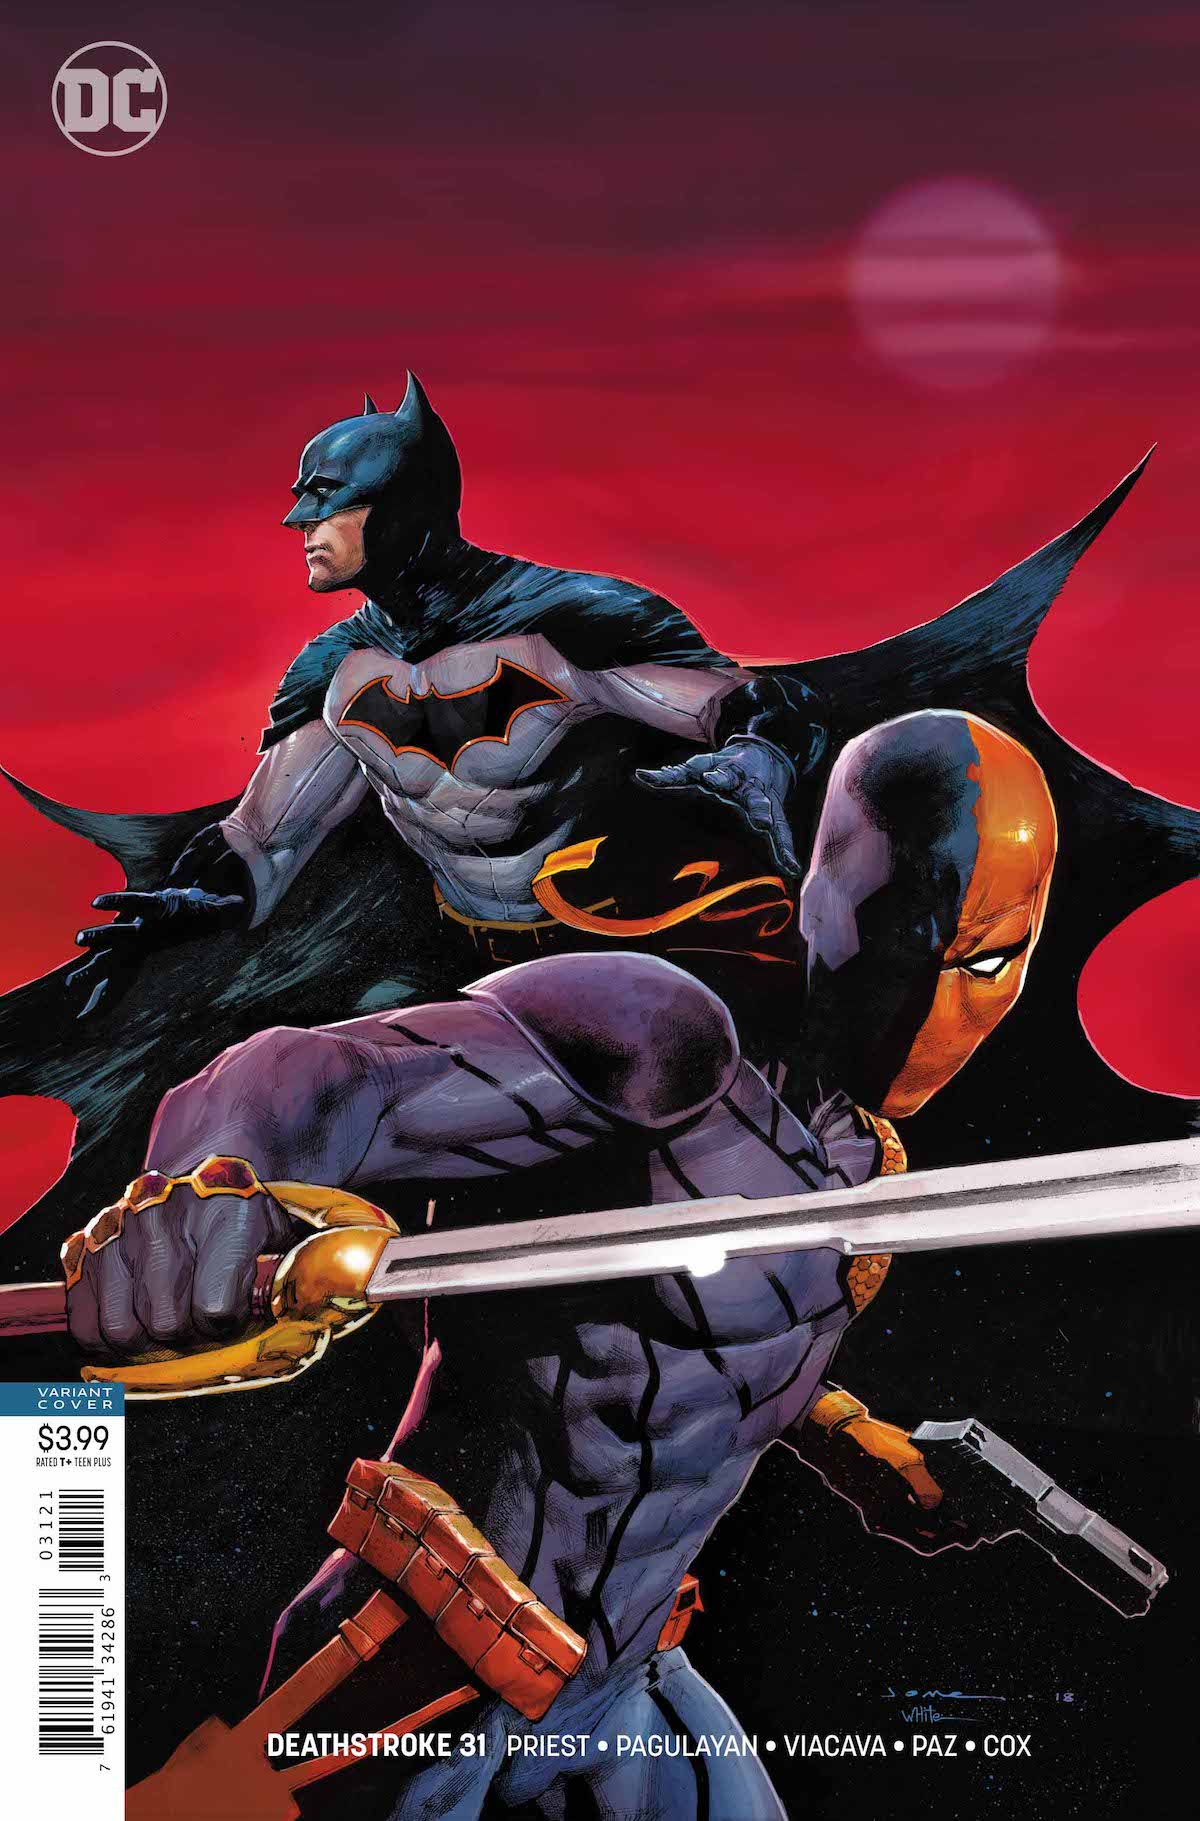 Deathstroke #31 variant cover